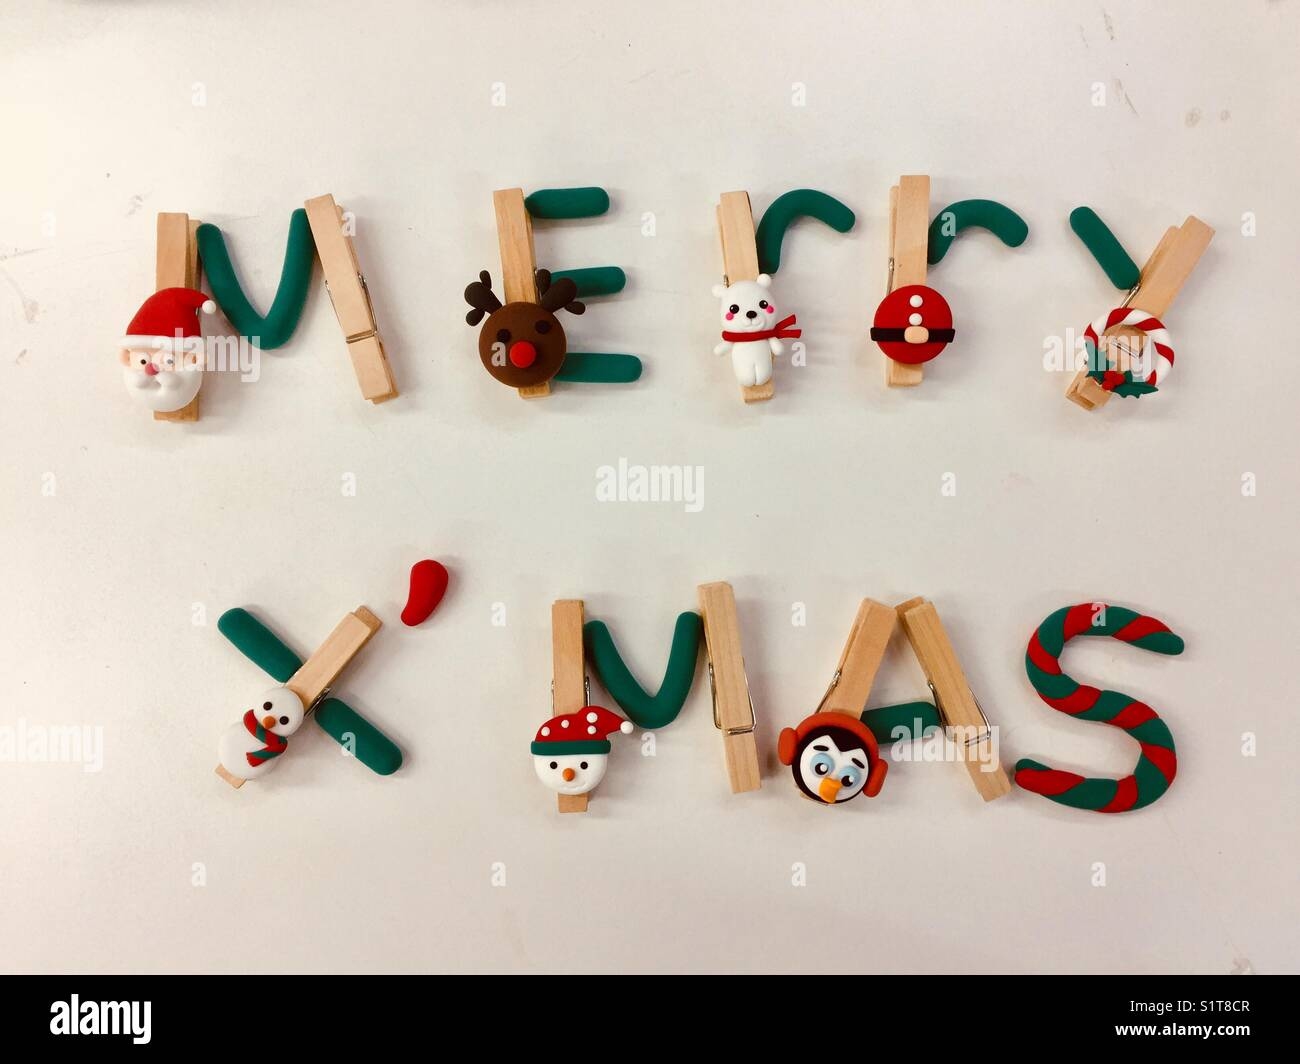 Merry Christmas Fonts Images.Merry Christmas Fonts Design Stock Photo 310934759 Alamy